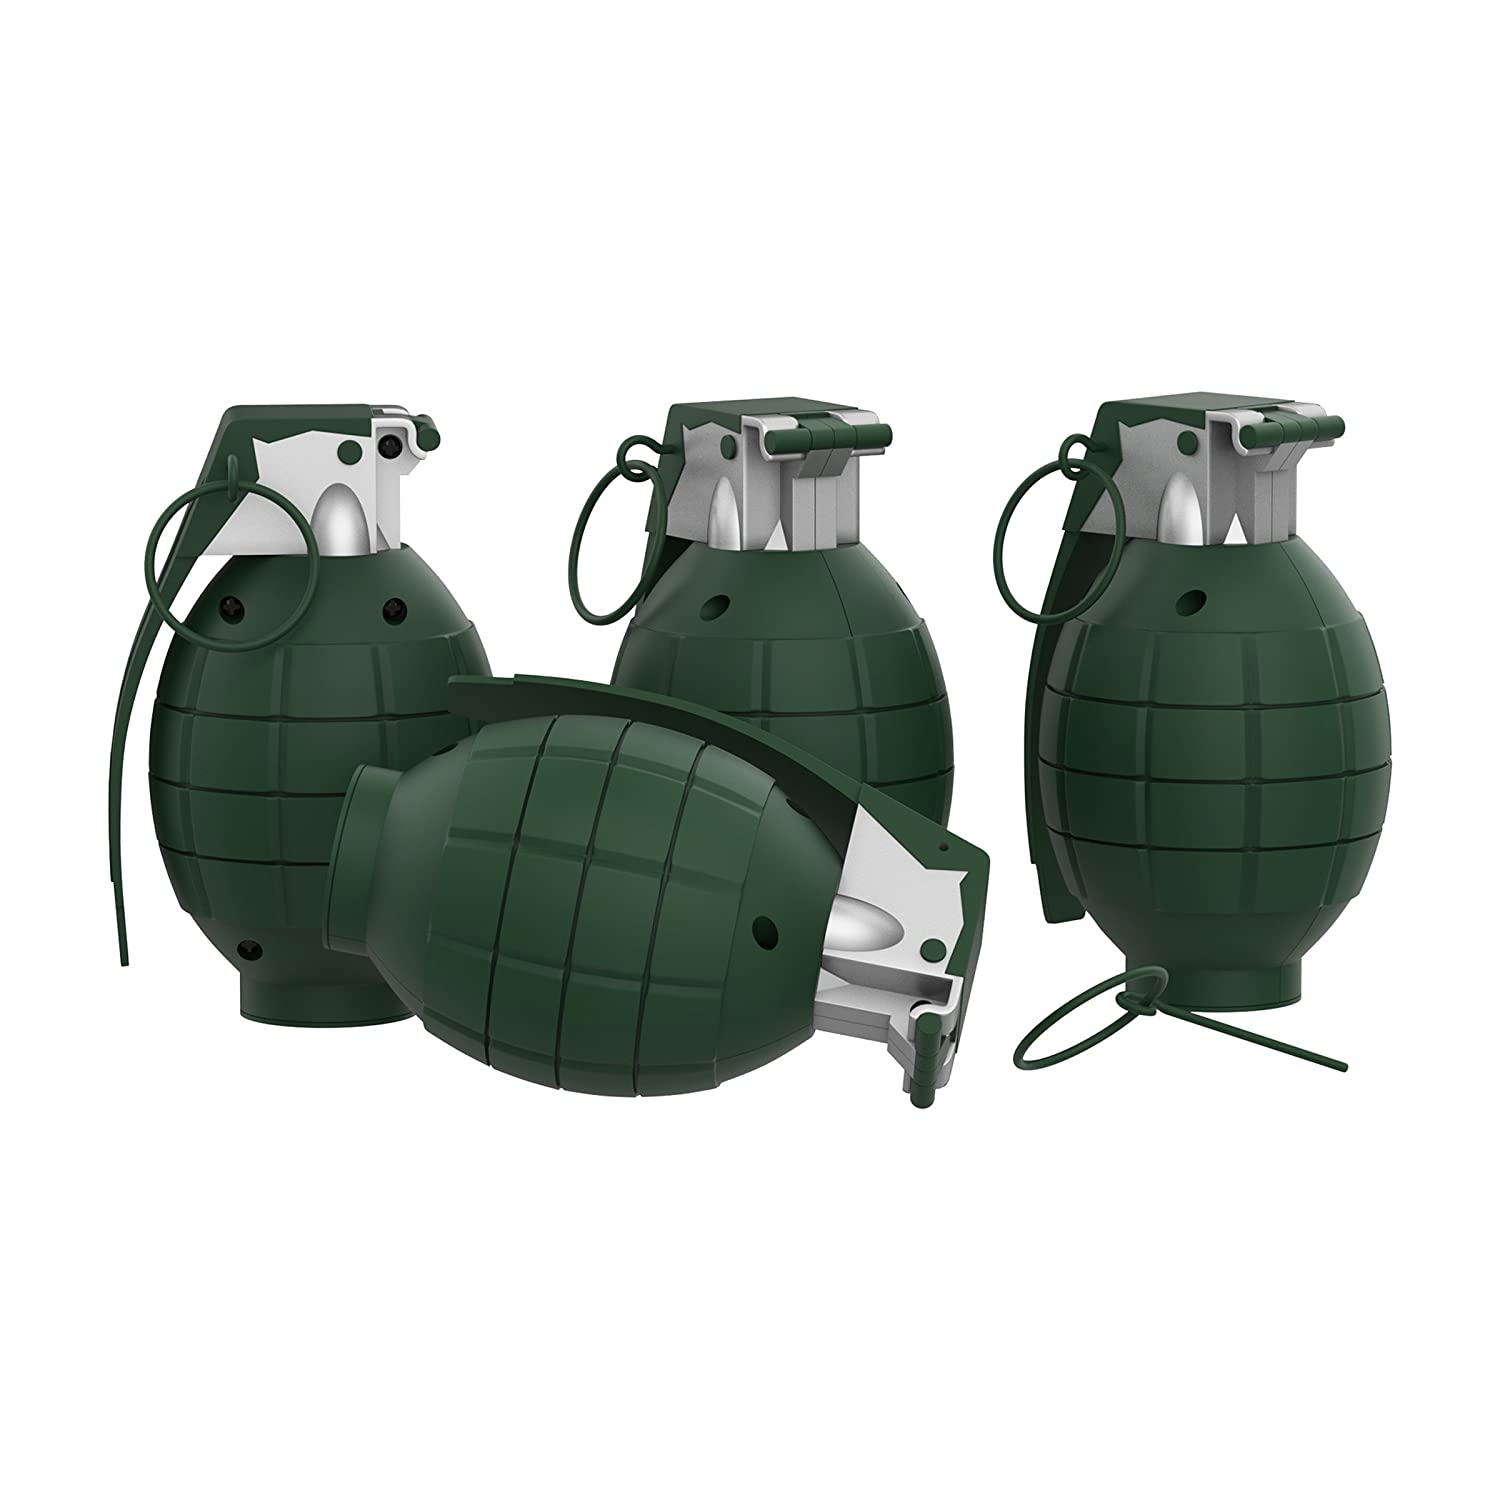 Toy Grenade Set of 4 Trigger, Pull Pin, Realistic Explosion Sound Effects-Military Pretend Play Accessories Kids (Army Green) Trademark 80-DA20475